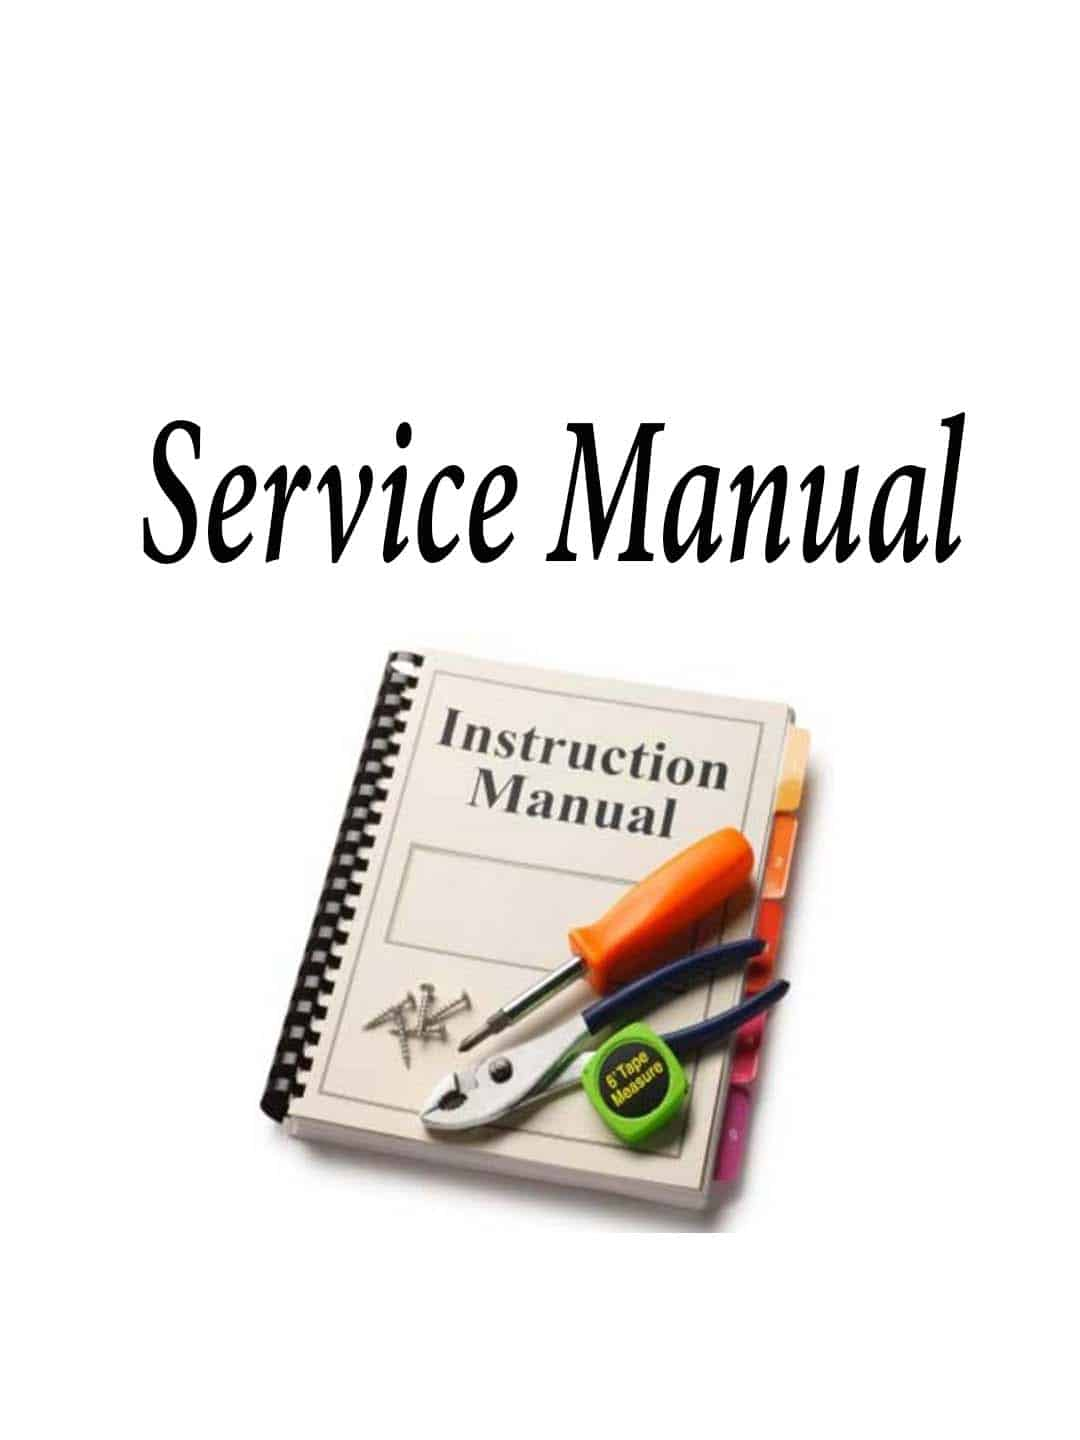 SM75784 - Midland Service Manual For 75-784